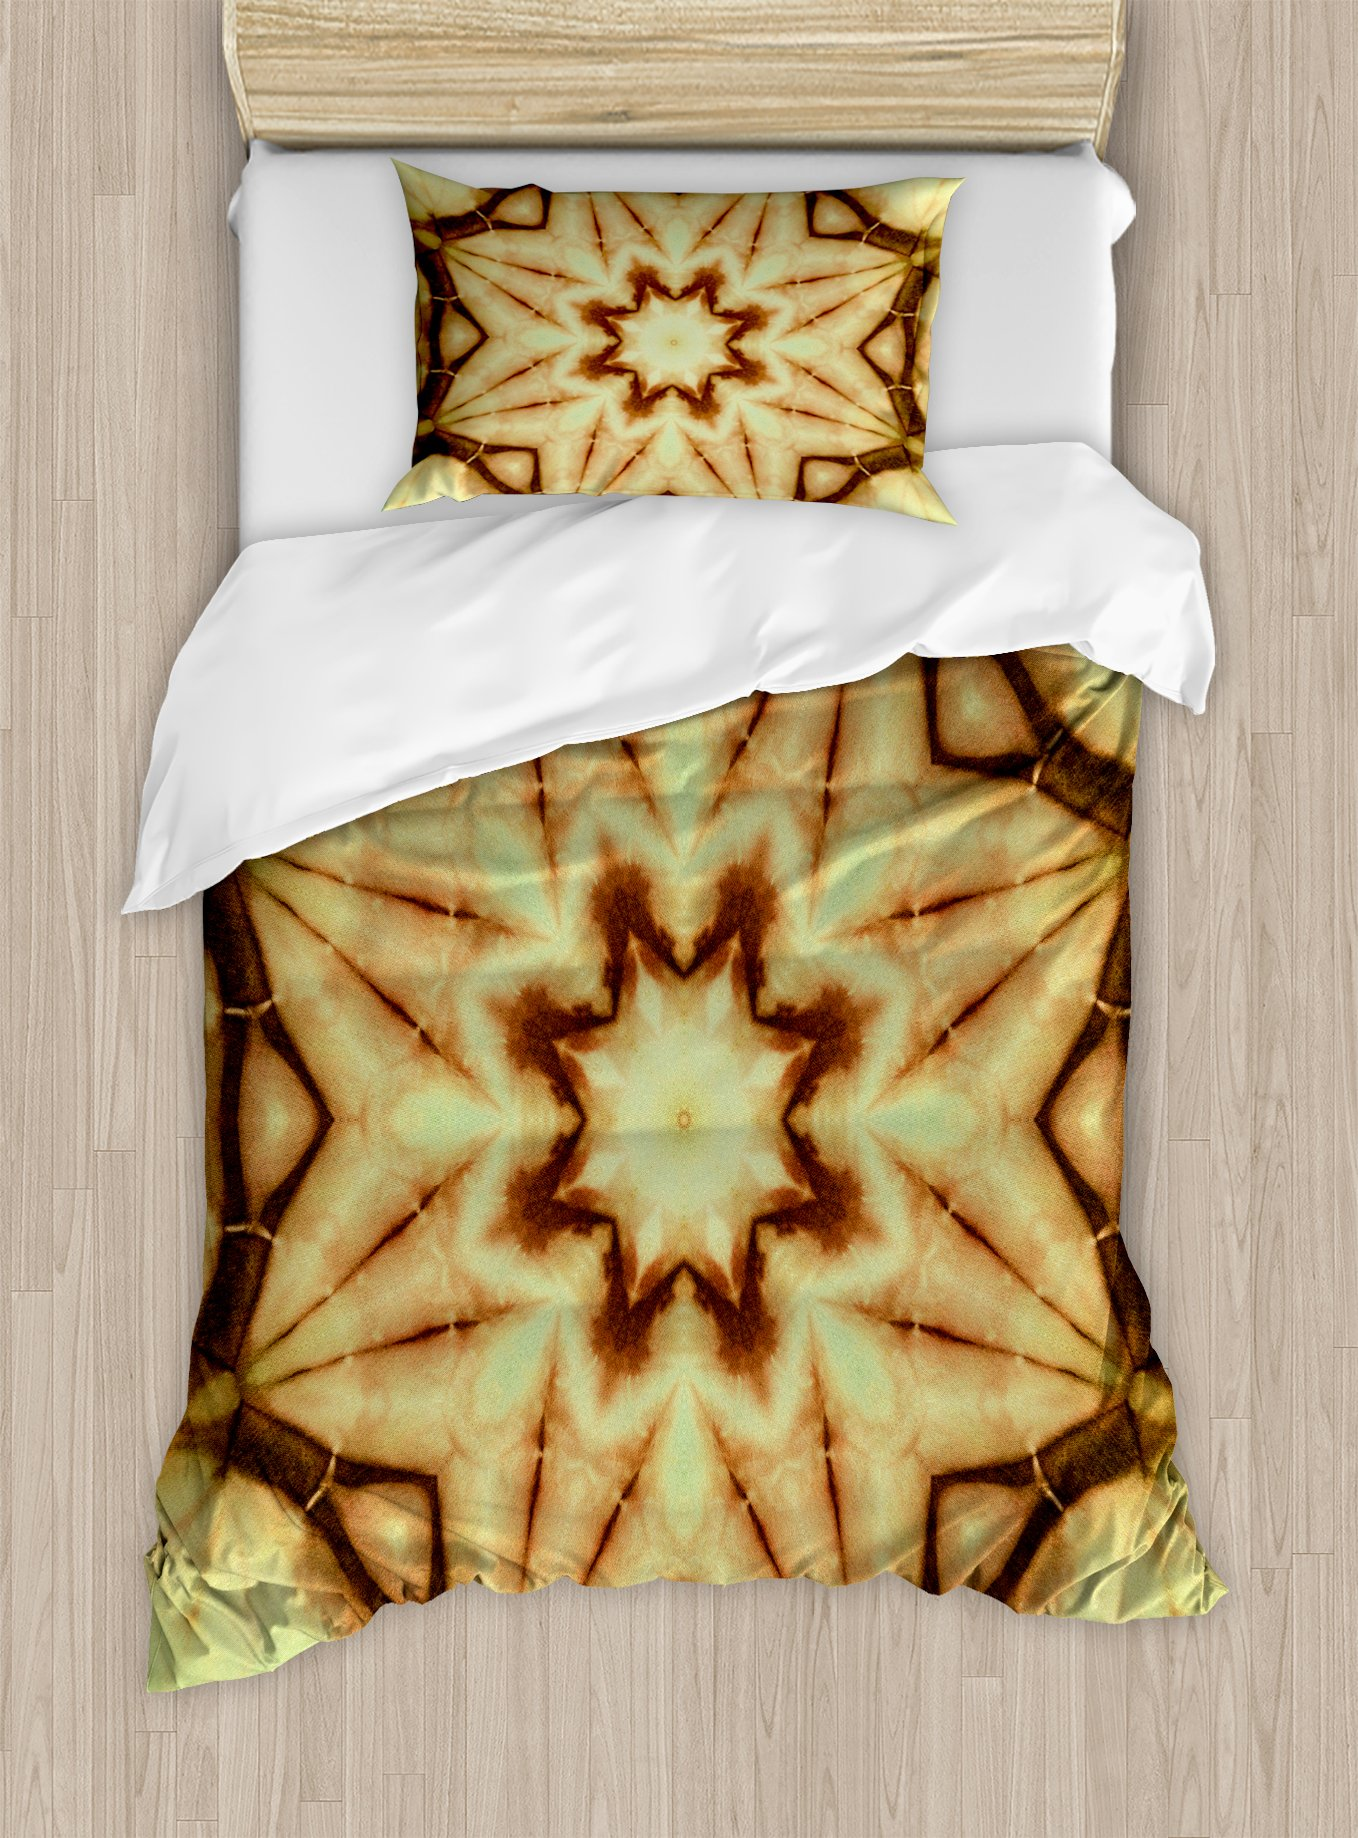 Ambesonne Mandala Duvet Cover Set Twin Size, Trippy Ethnic Thai Mandala Motif with Dirty Grunge Smear and Rough Stains Art, Decorative 2 Piece Bedding Set with 1 Pillow Sham, Mustard Brown by Ambesonne